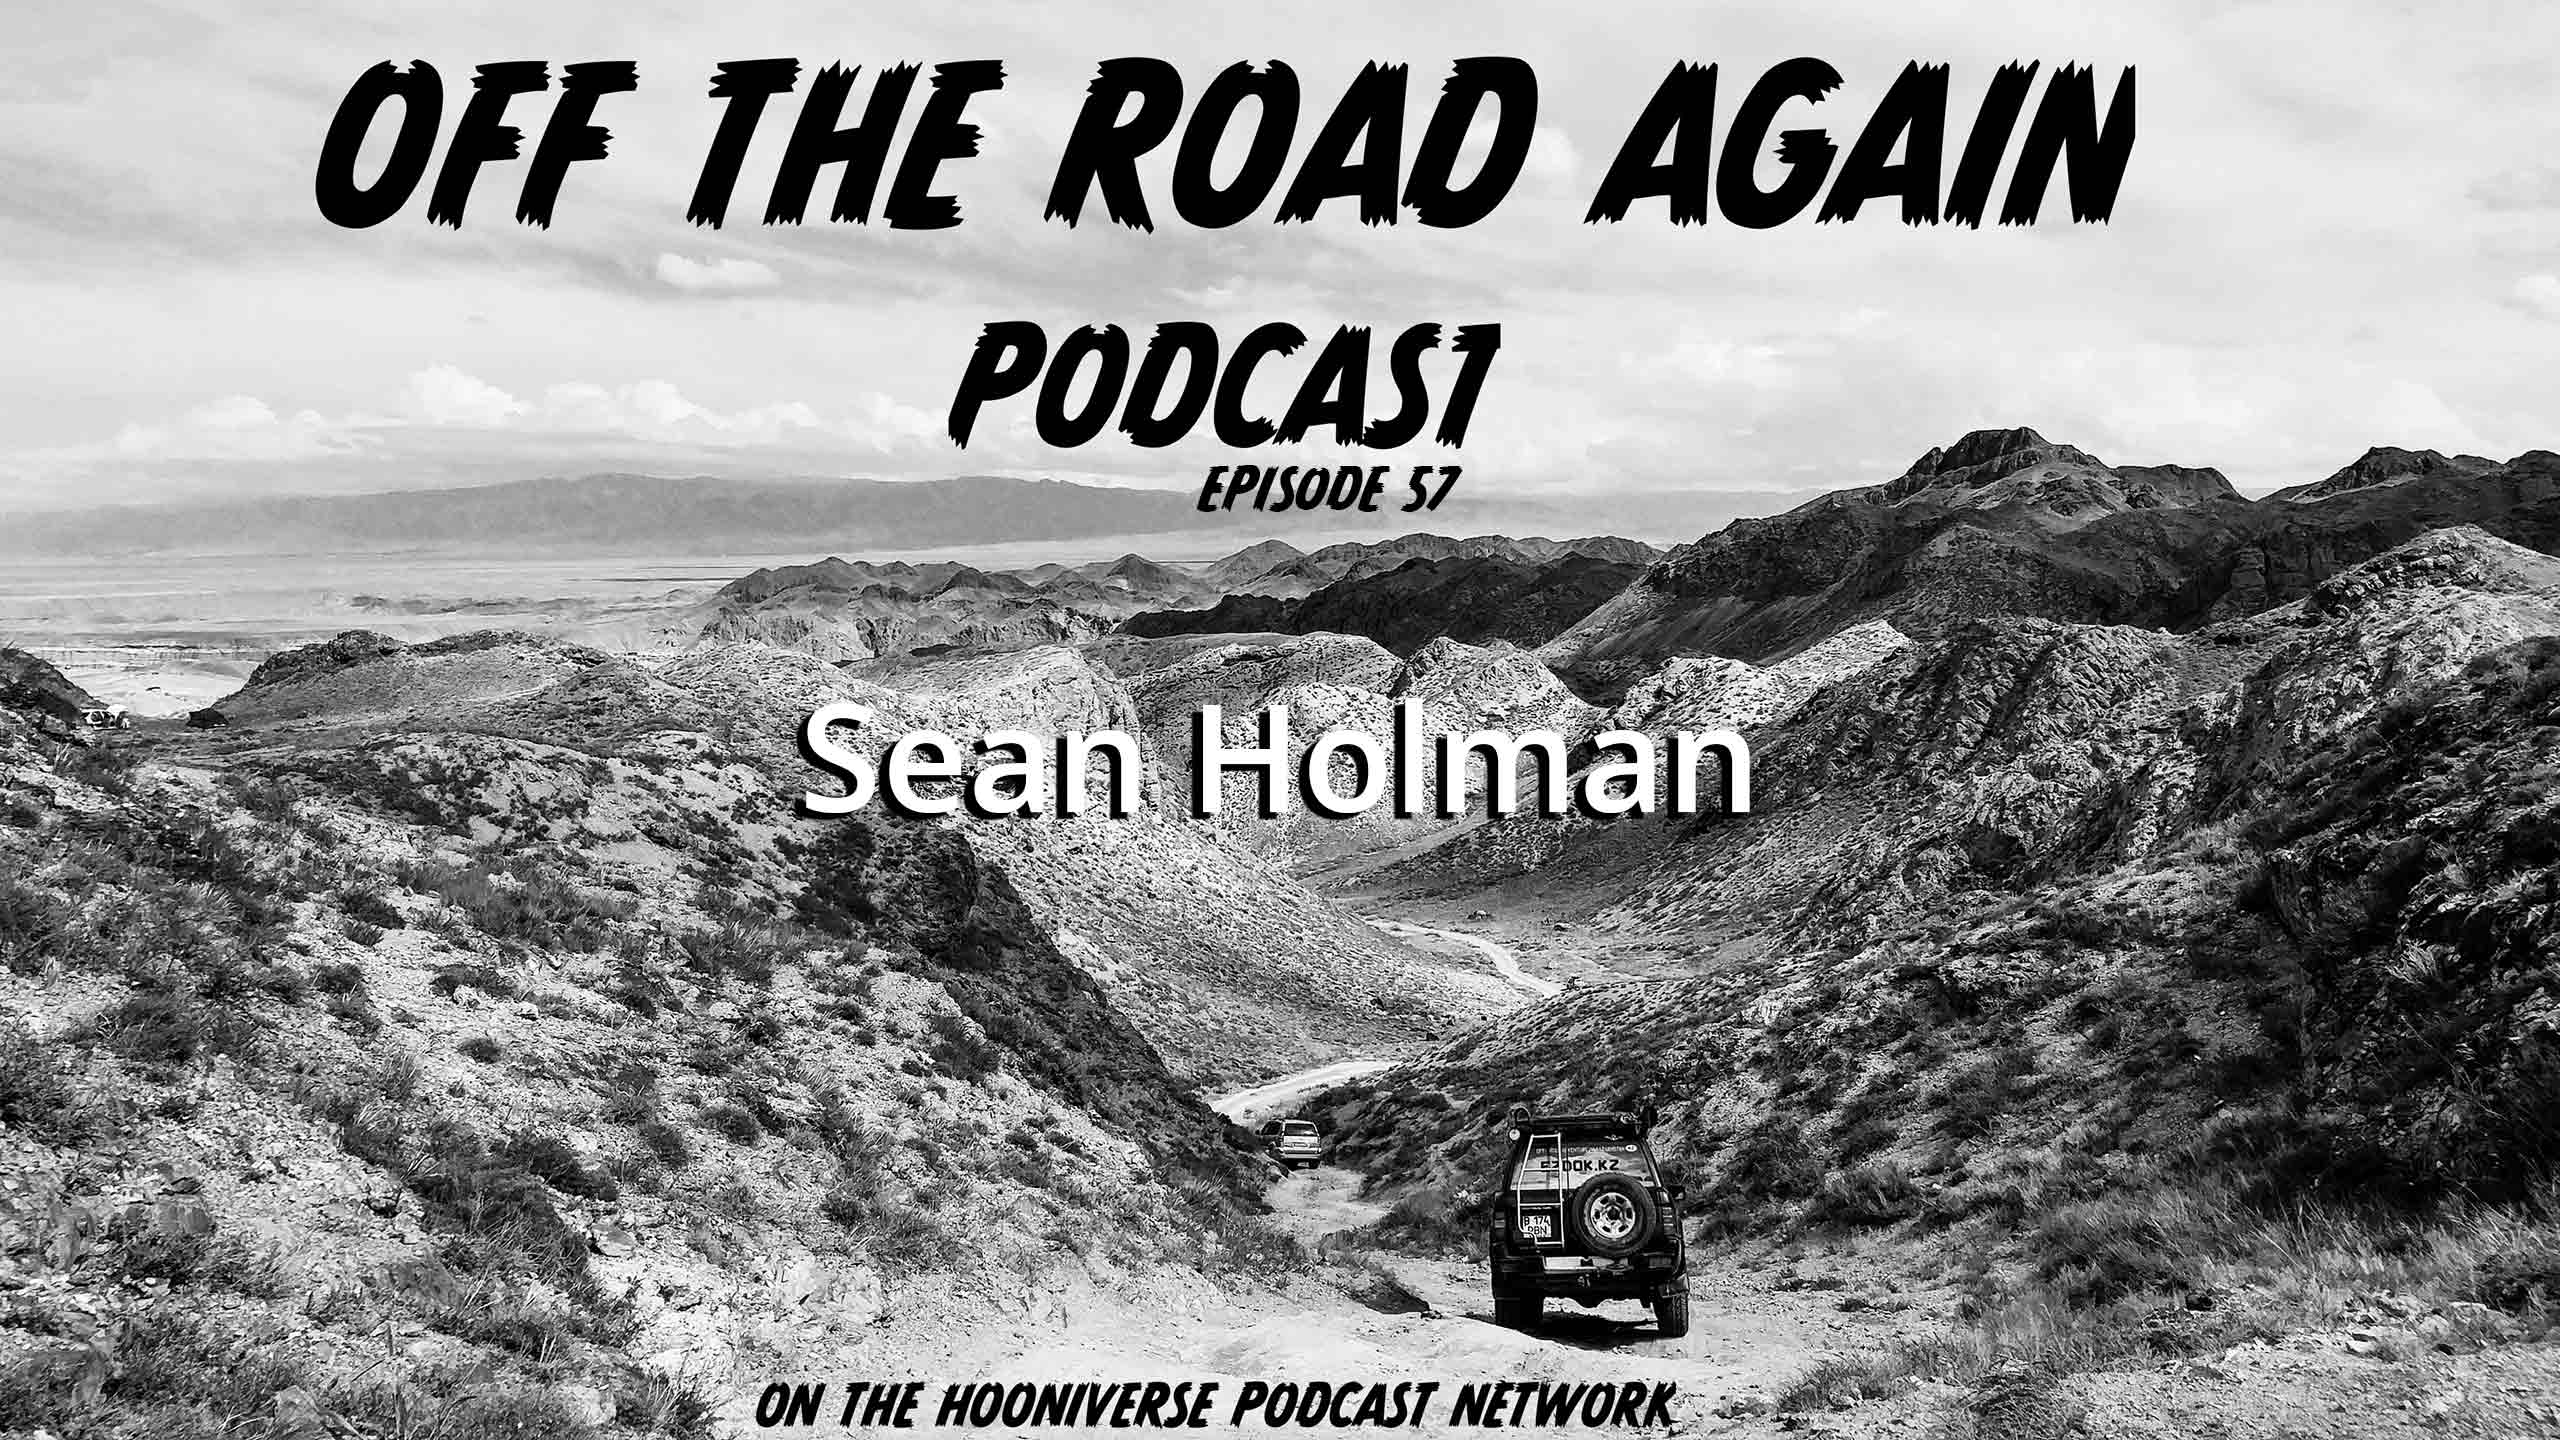 Sean-Holman-Off-The-Road-Again-Podcast-Episode-57